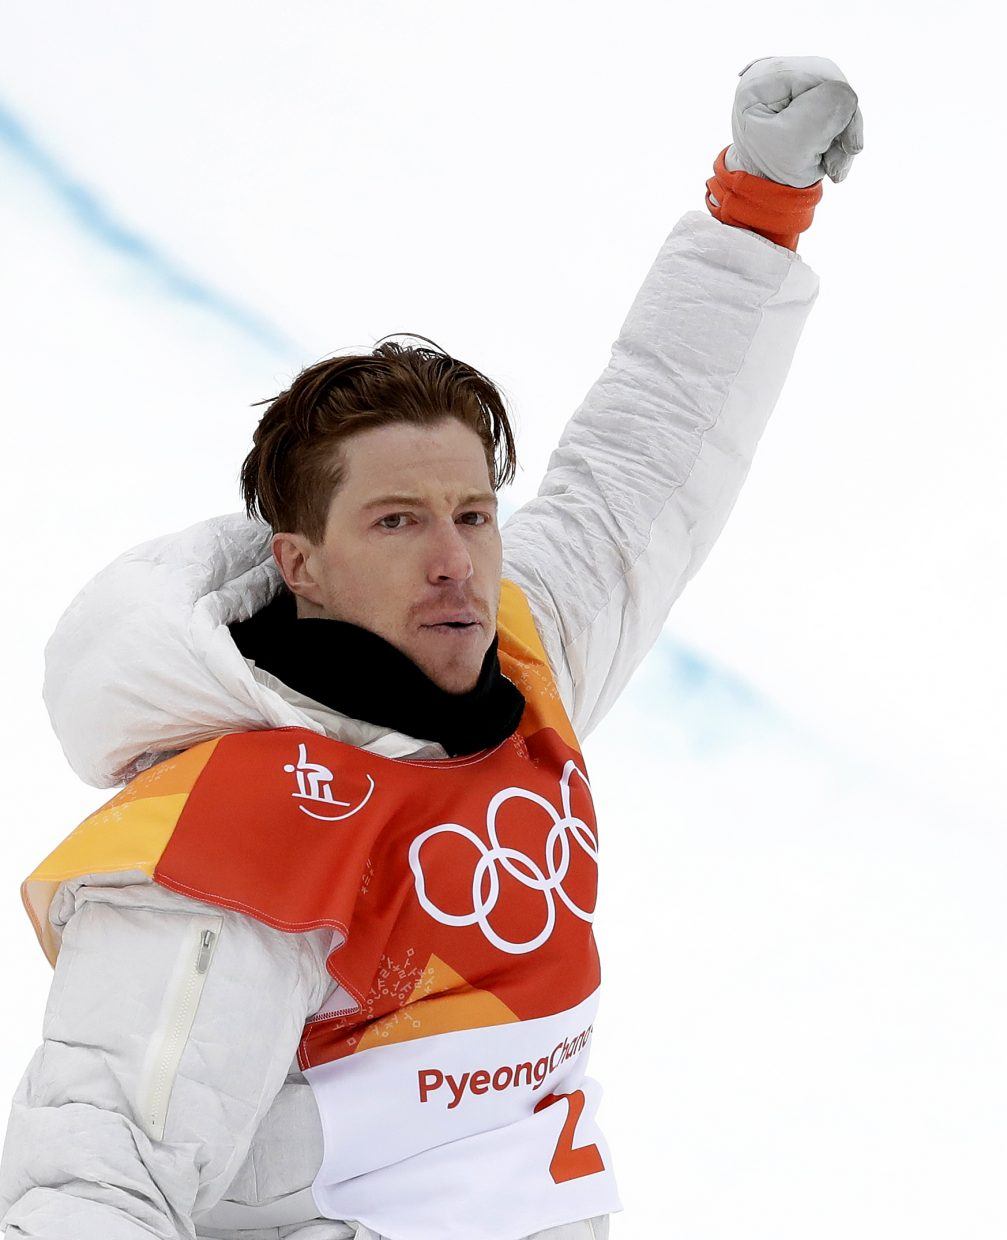 Shaun White, of the United States, celebrates after his run during the men's halfpipe finals at Phoenix Snow Park at the 2018 Winter Olympics in Pyeongchang, South Korea, Wednesday, Feb. 14, 2018. (AP Photo/Gregory Bull)